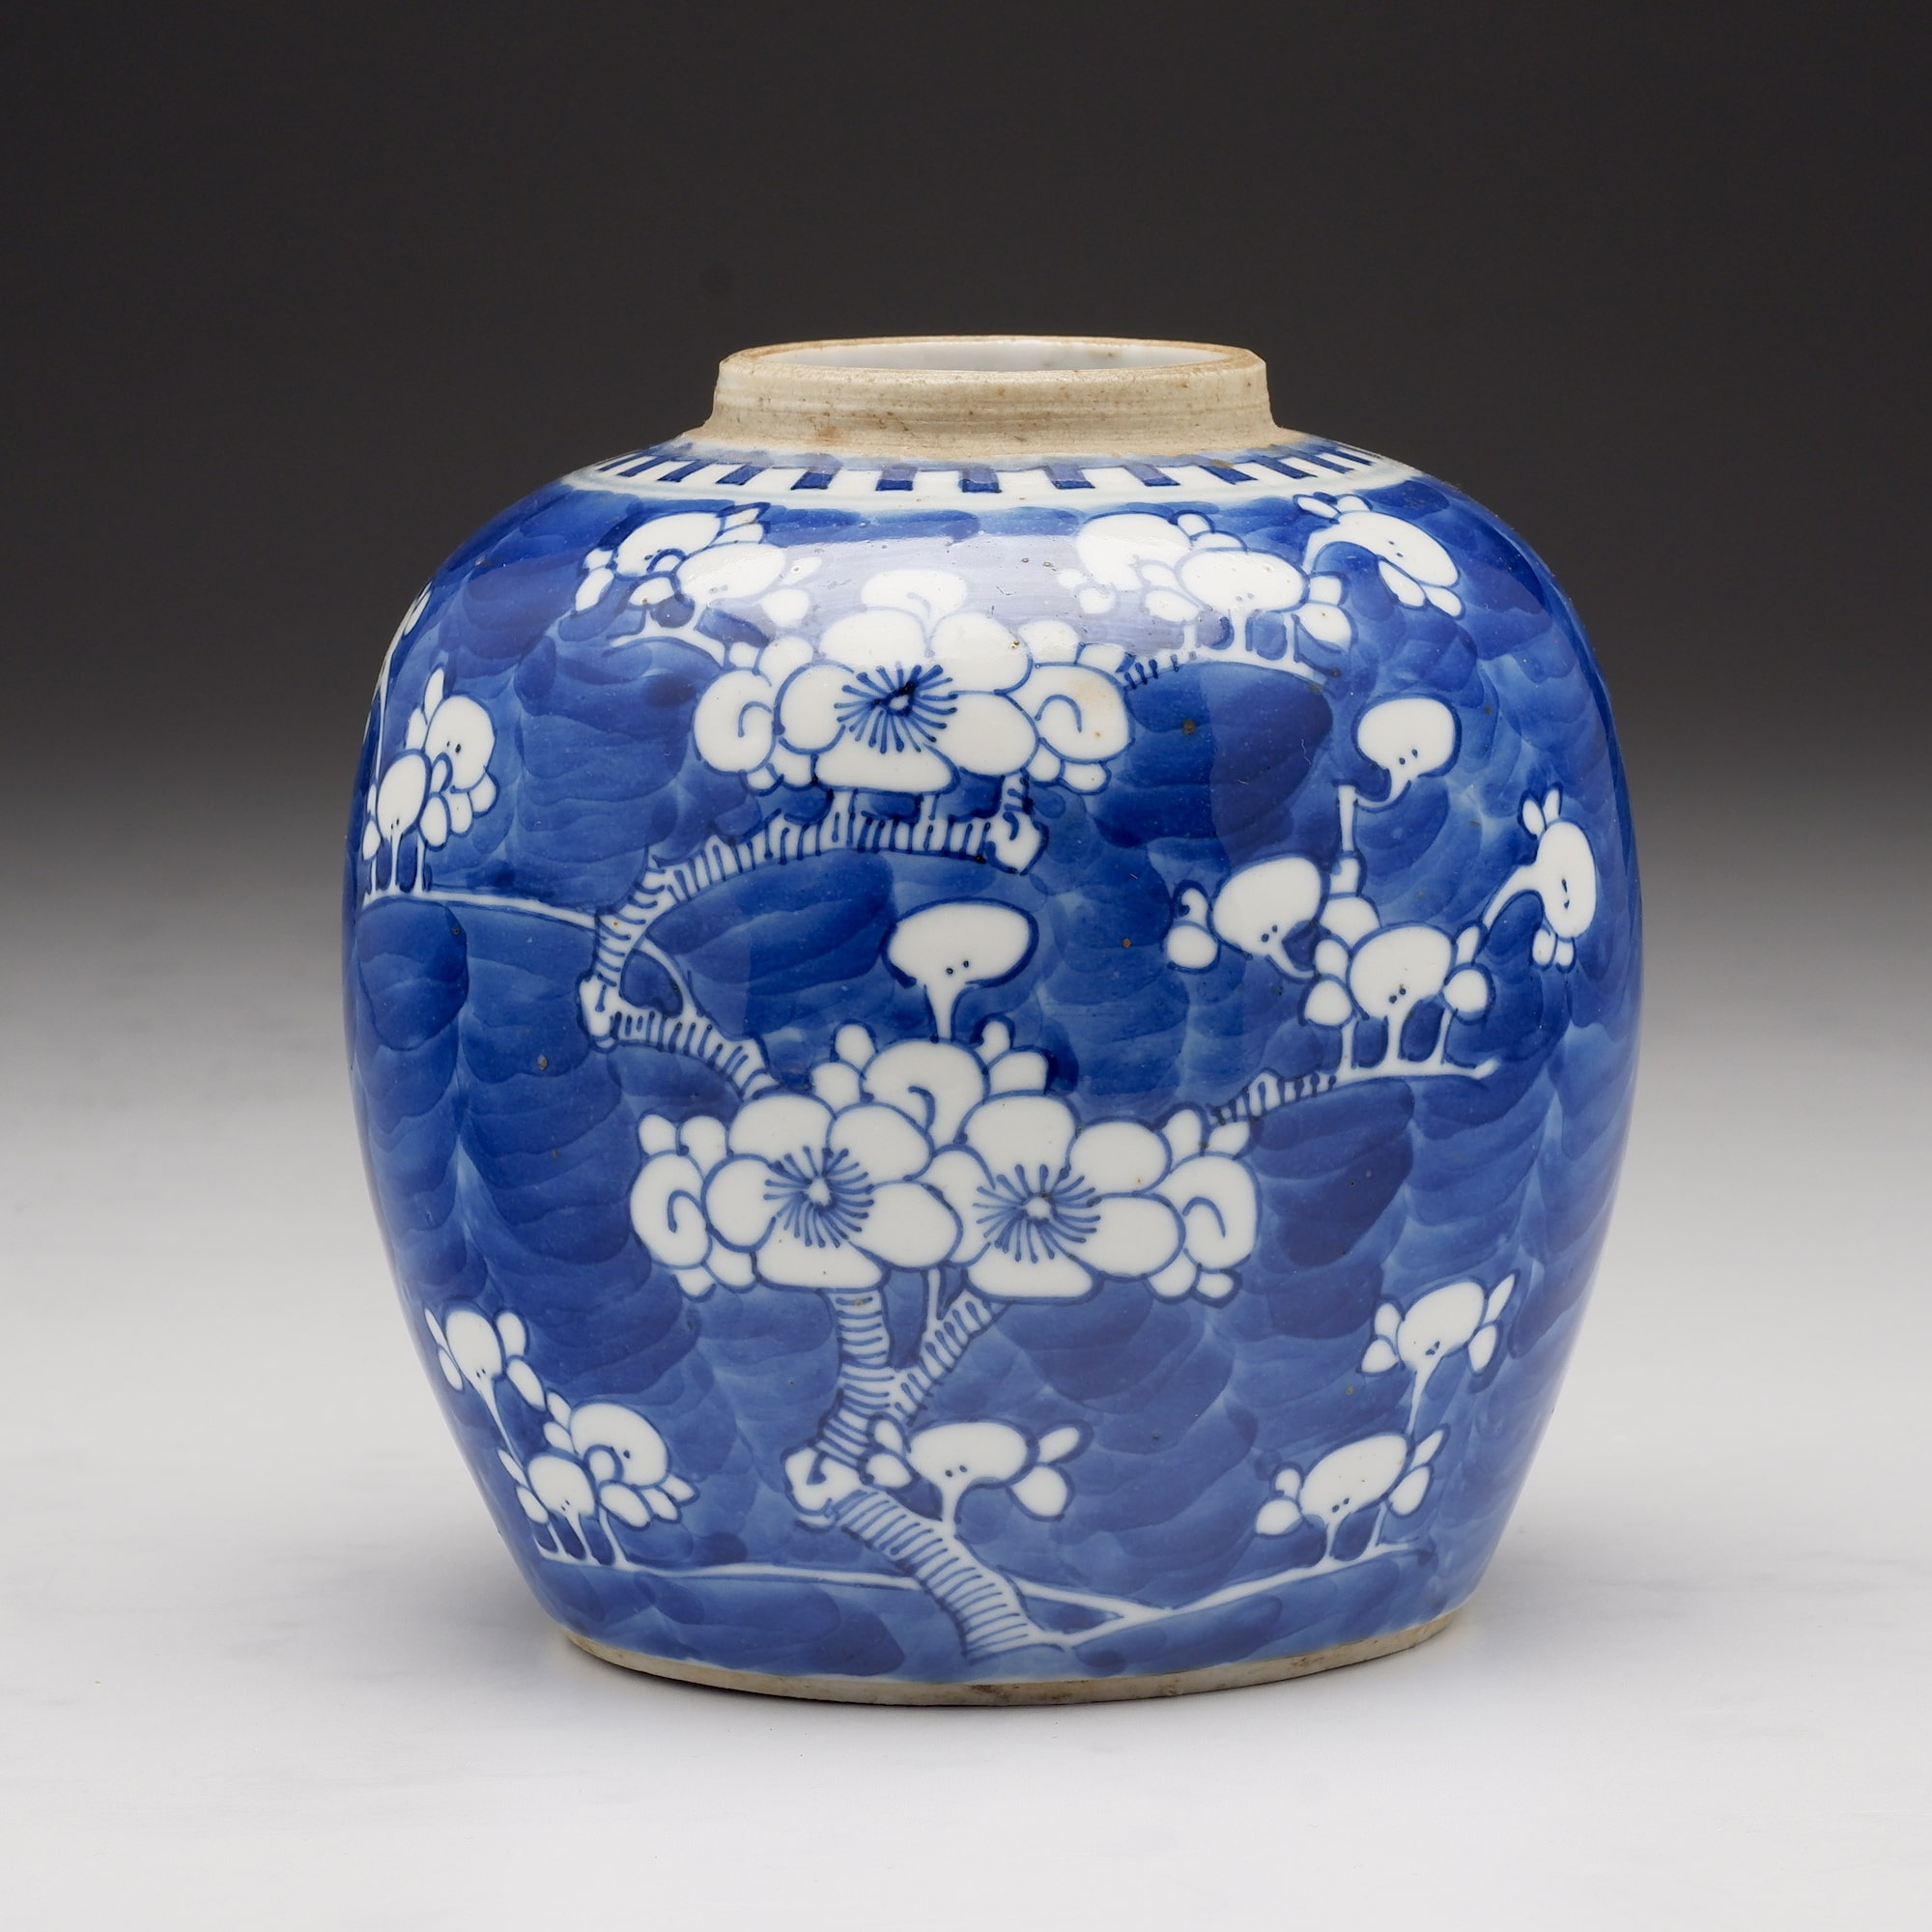 'Antique Chinese Blue and White Ginger Jar Decorated with Prunus, 19th Century'